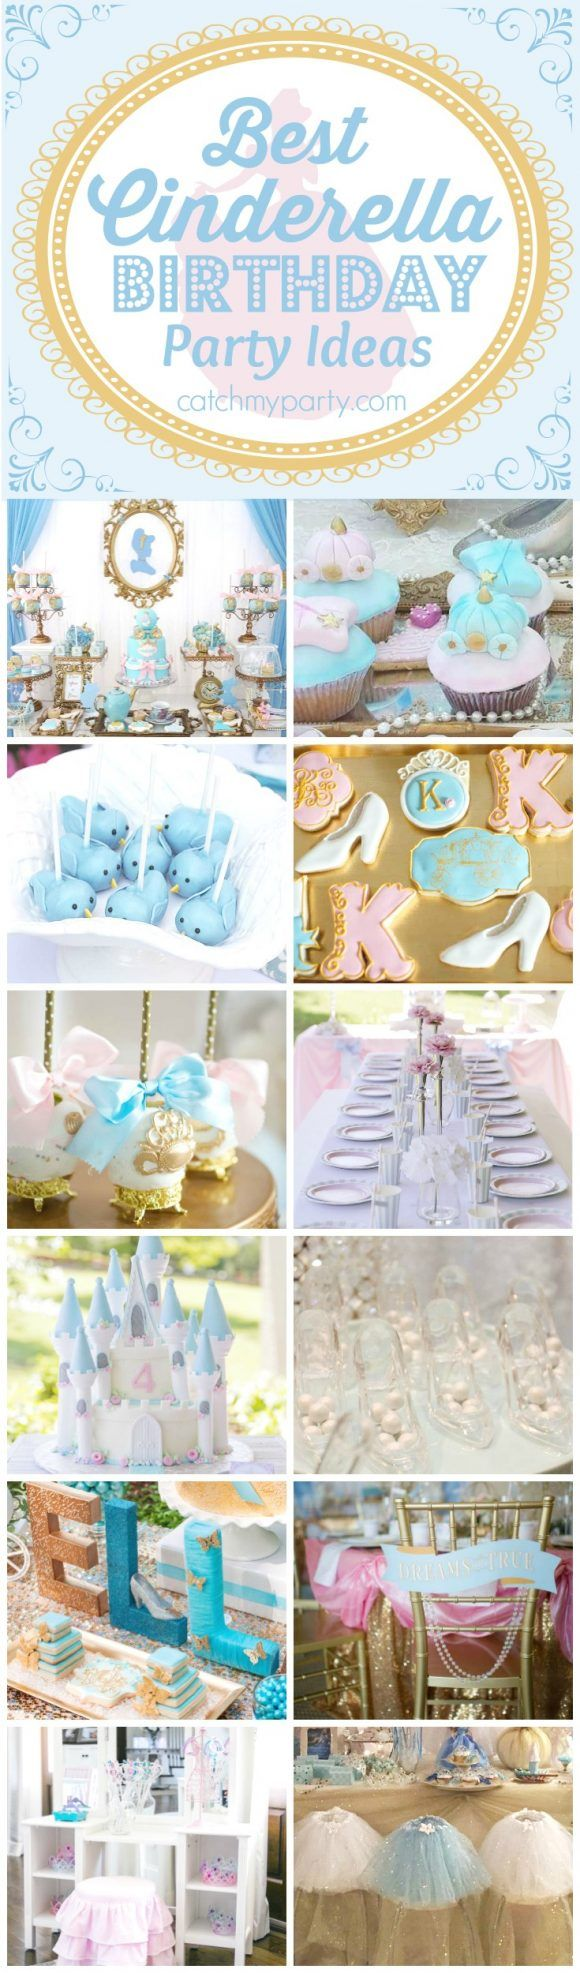 Best Cinderella Birthday Party Ideas | The Catch My Party Blog | Bloglovin'